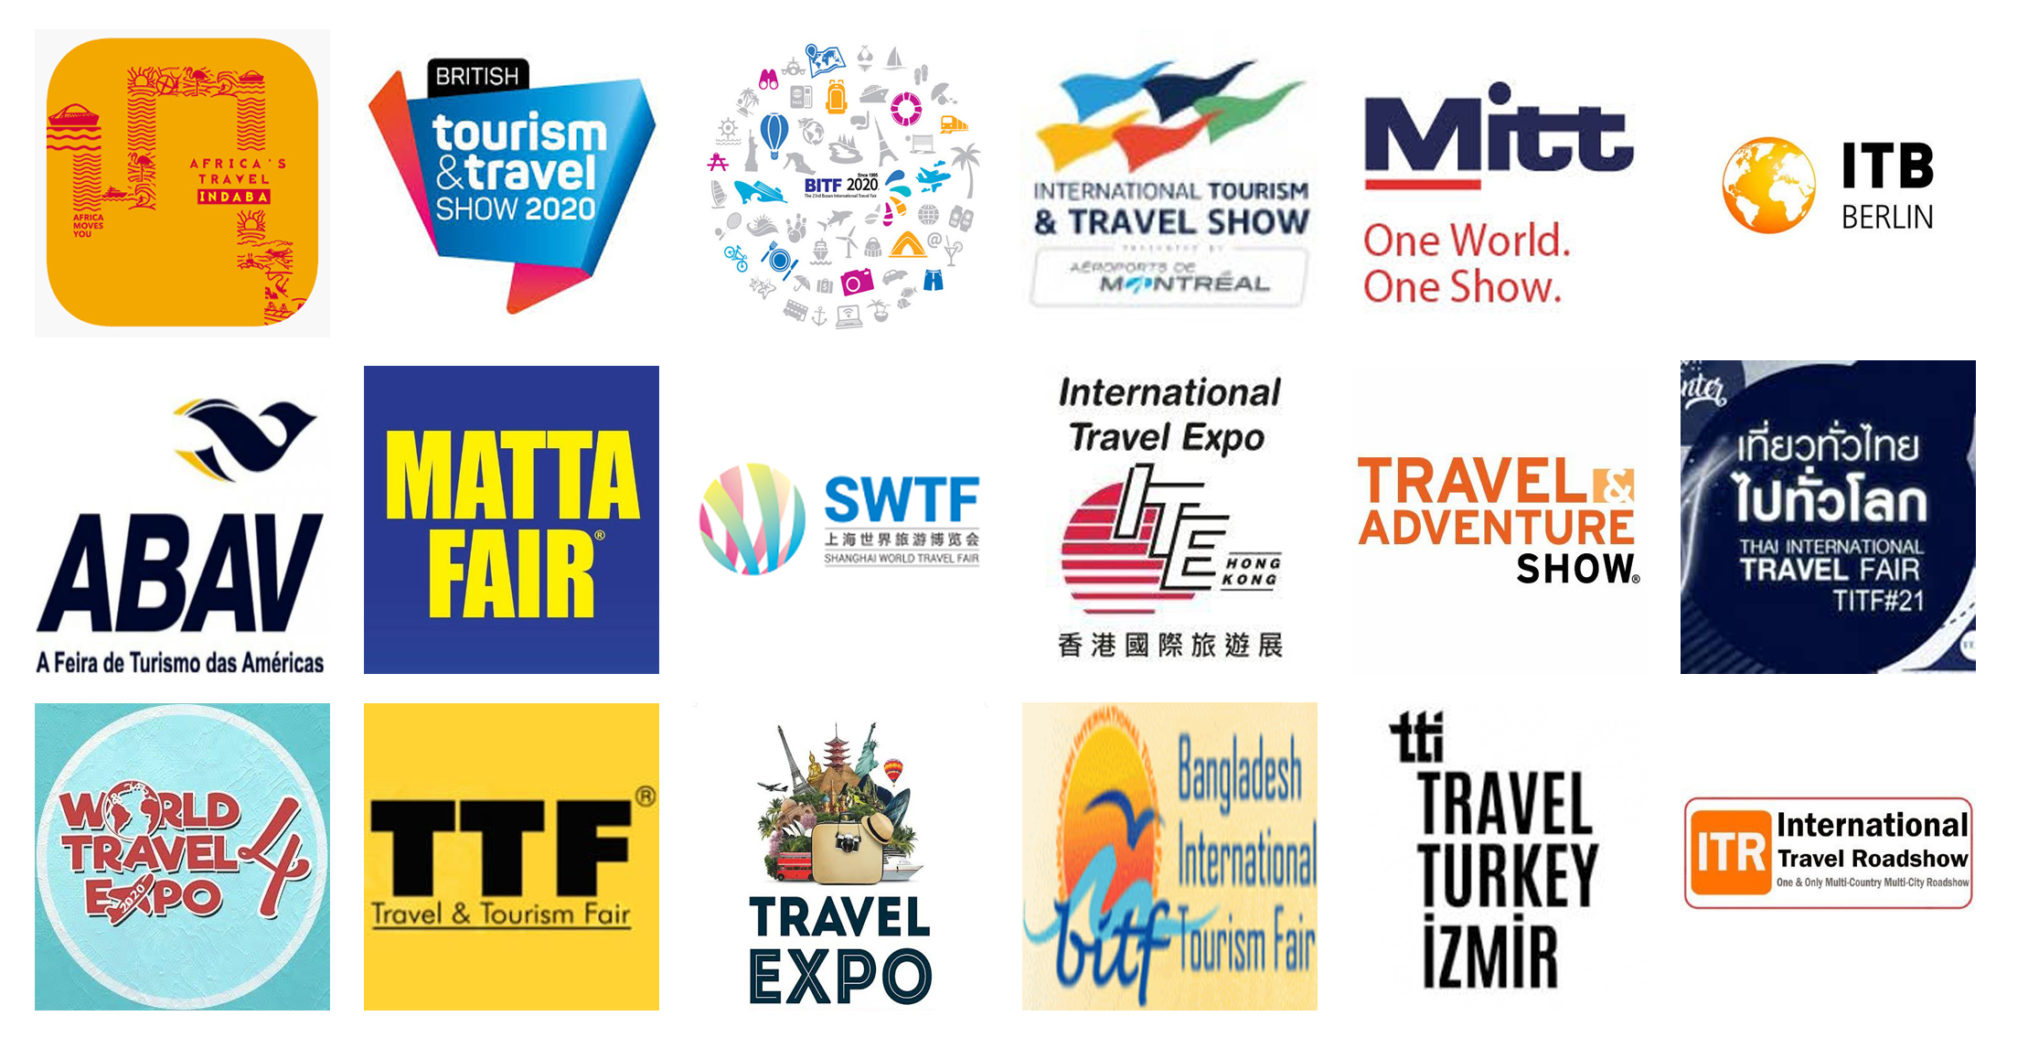 Tourism & Travel Fair & Trade Shows in 2020